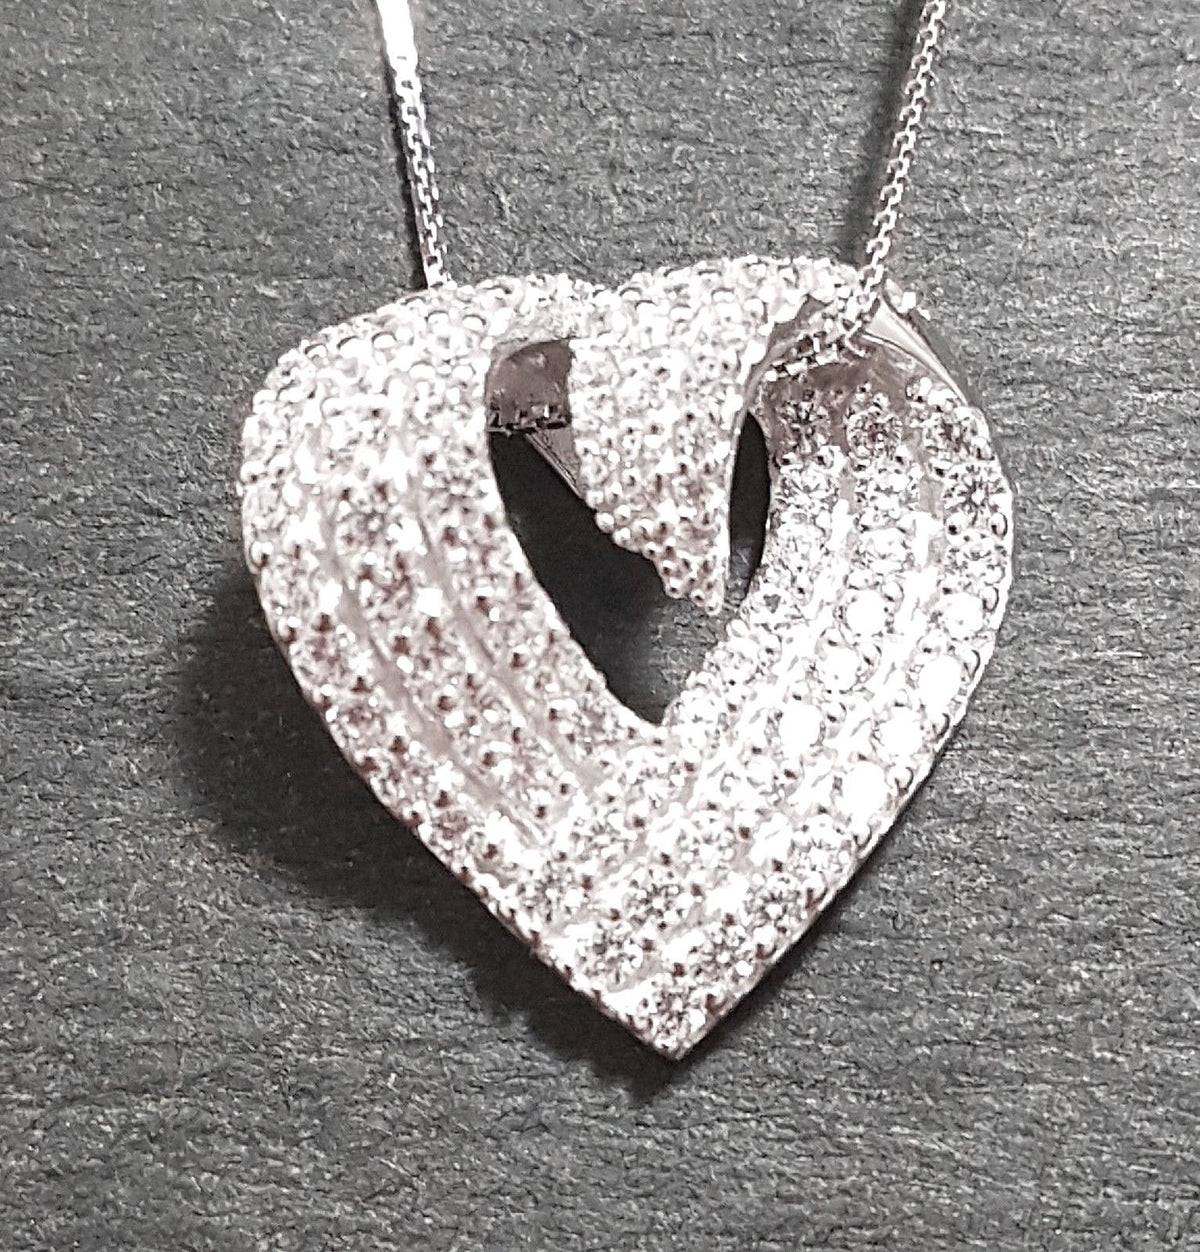 Brand New 14k White Gold On 925 Curved Heart CZ Pendant Charm with Free Chain